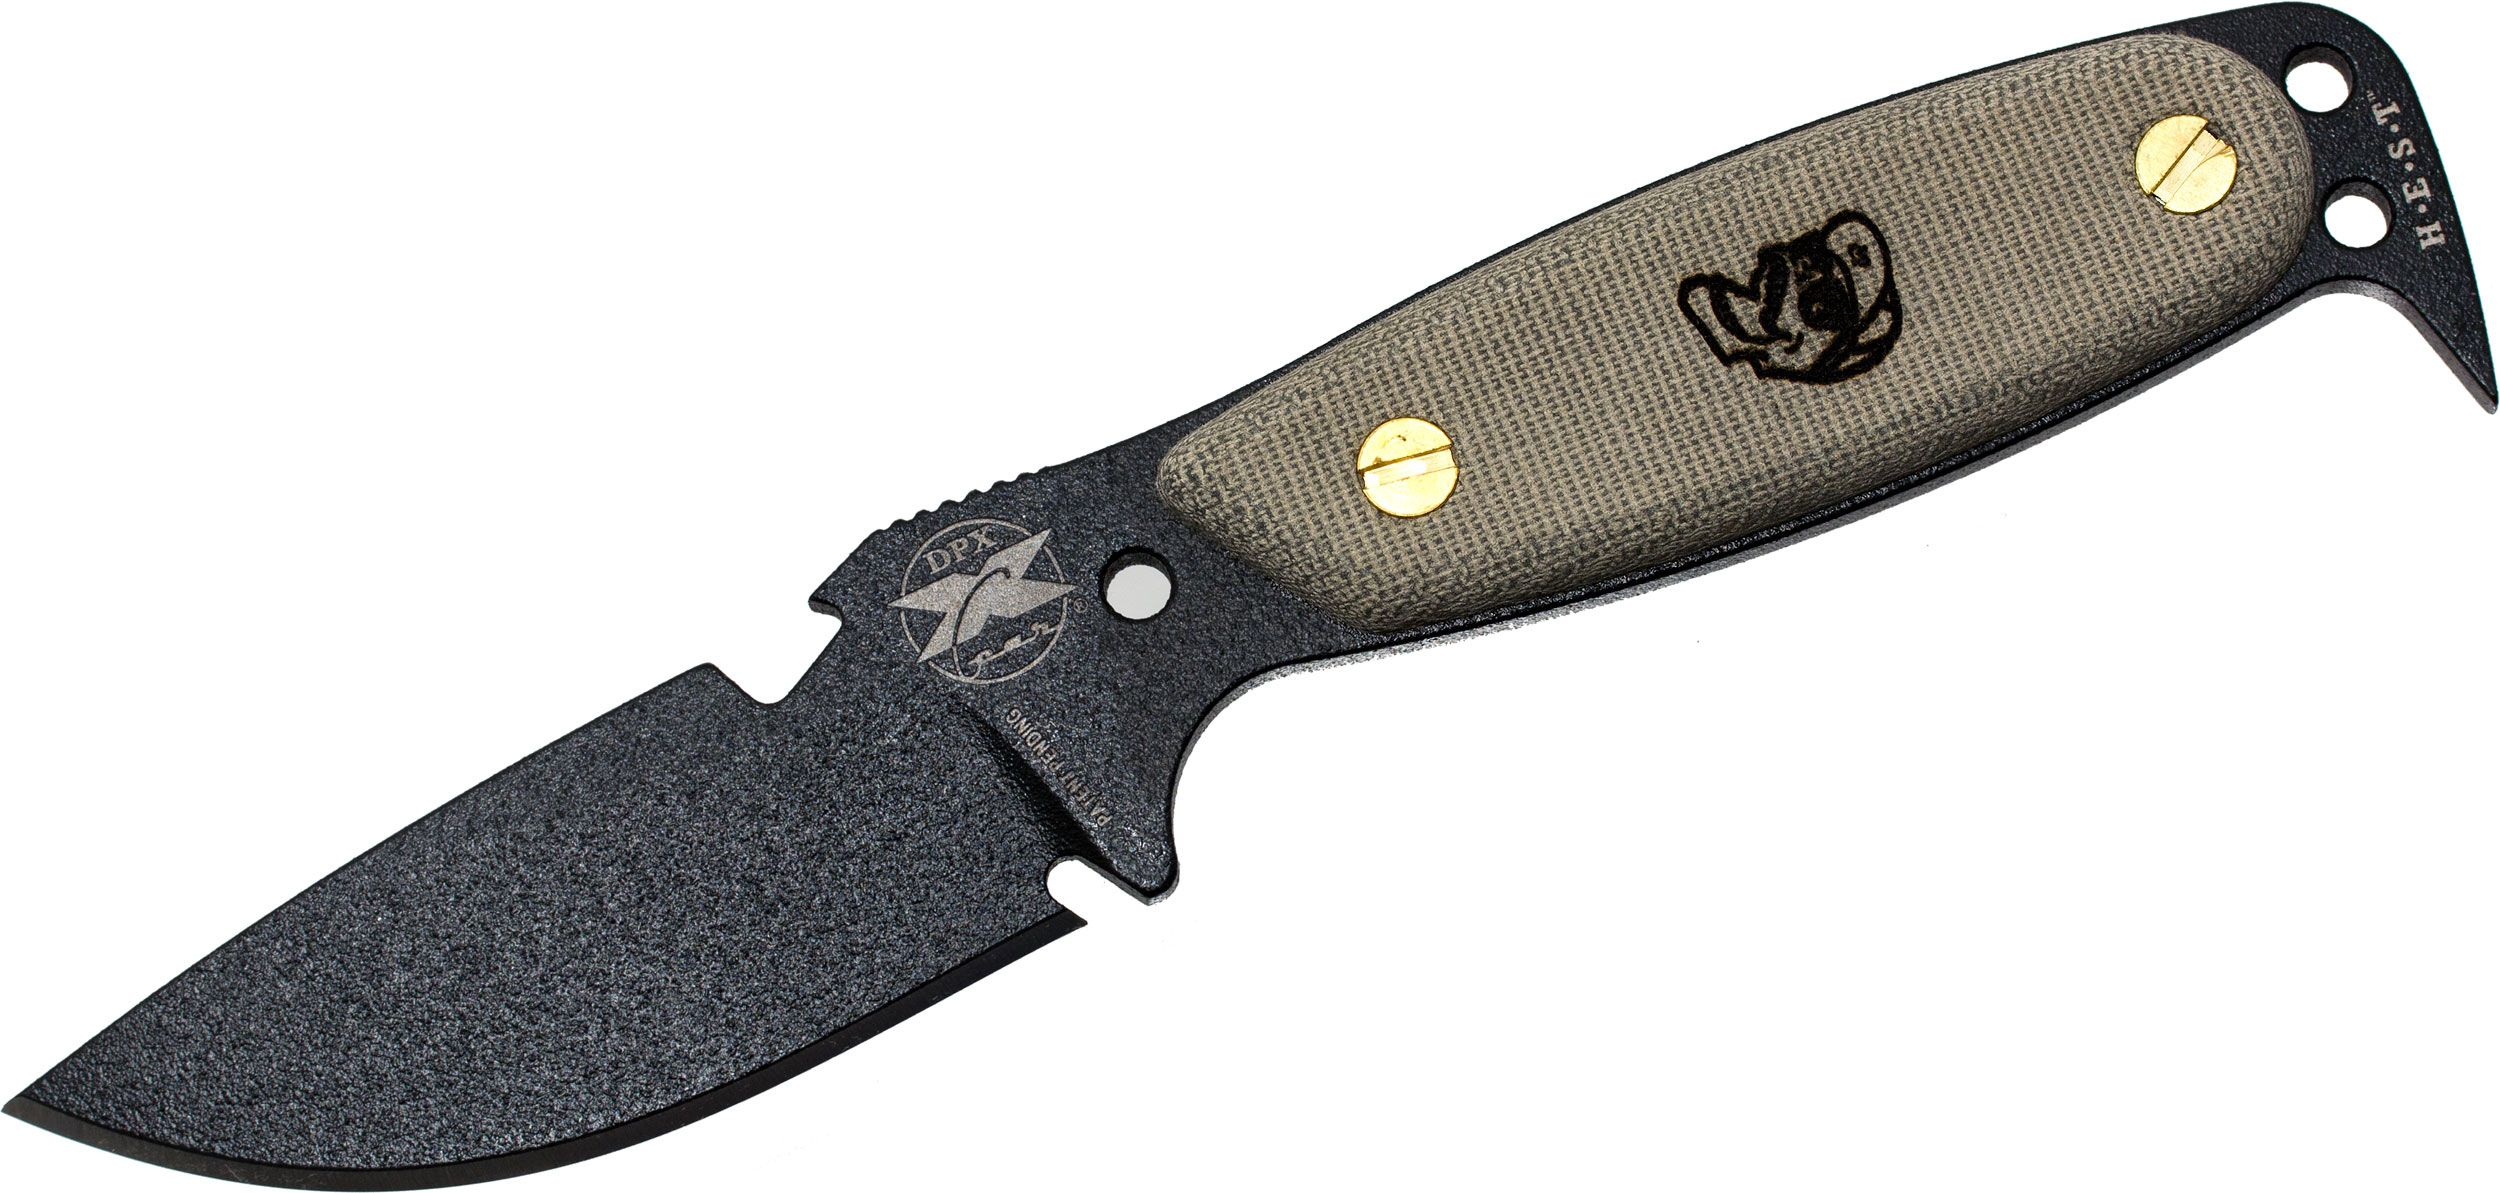 DPx Gear HEST Original by Rowen Fixed Blade, Green Micarta Handles